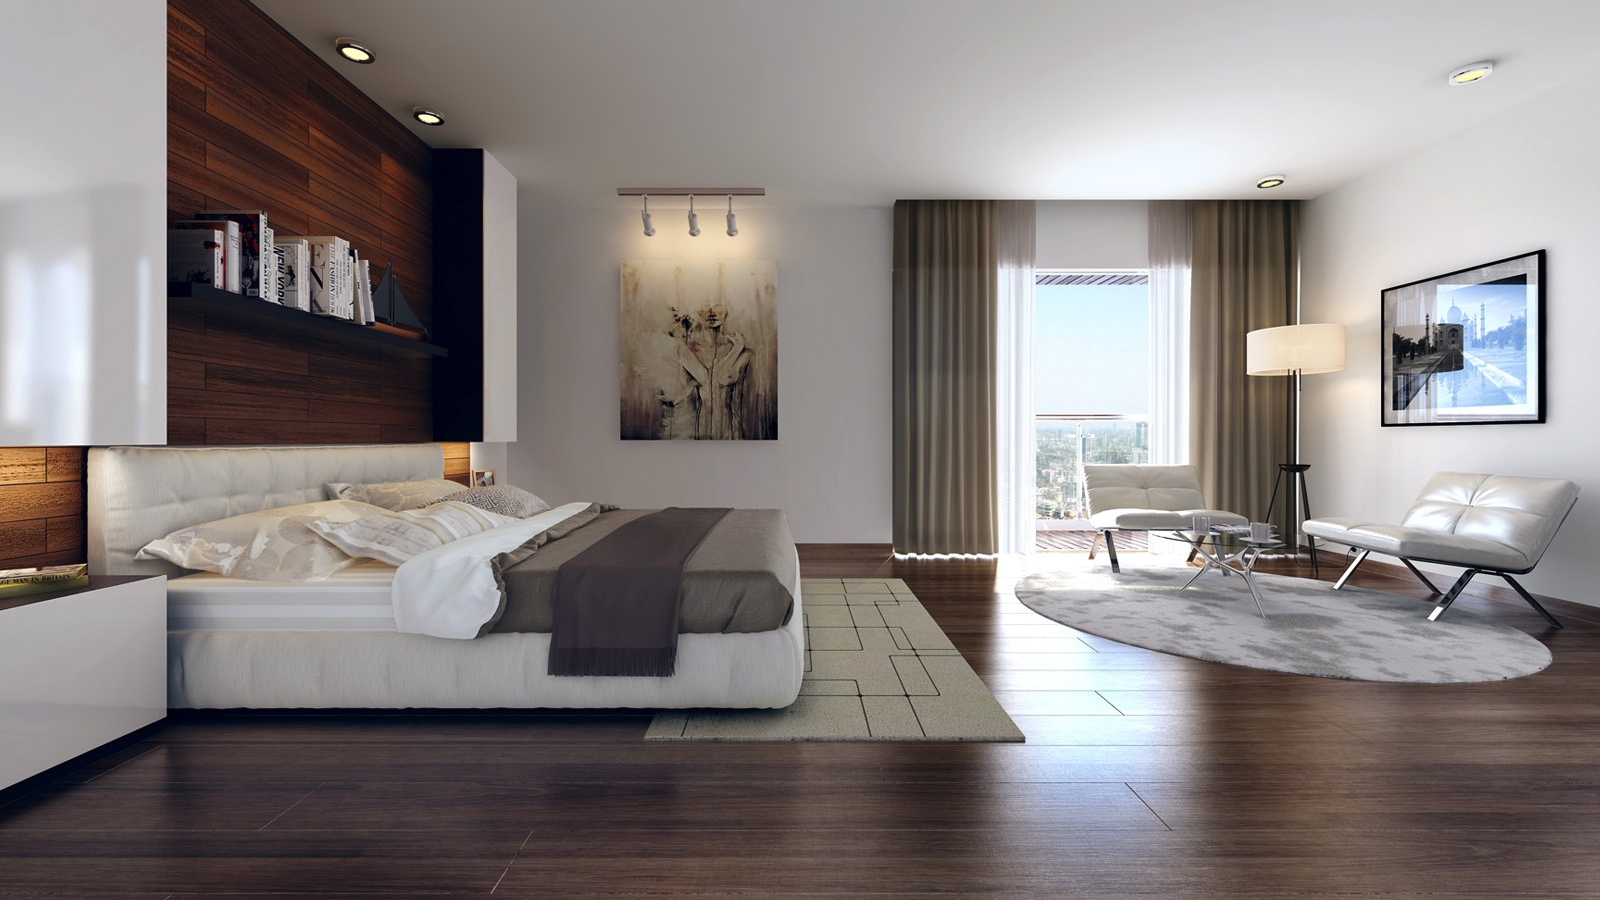 modern bedroom design ideas for rooms of any size - Bedroom Design Wood